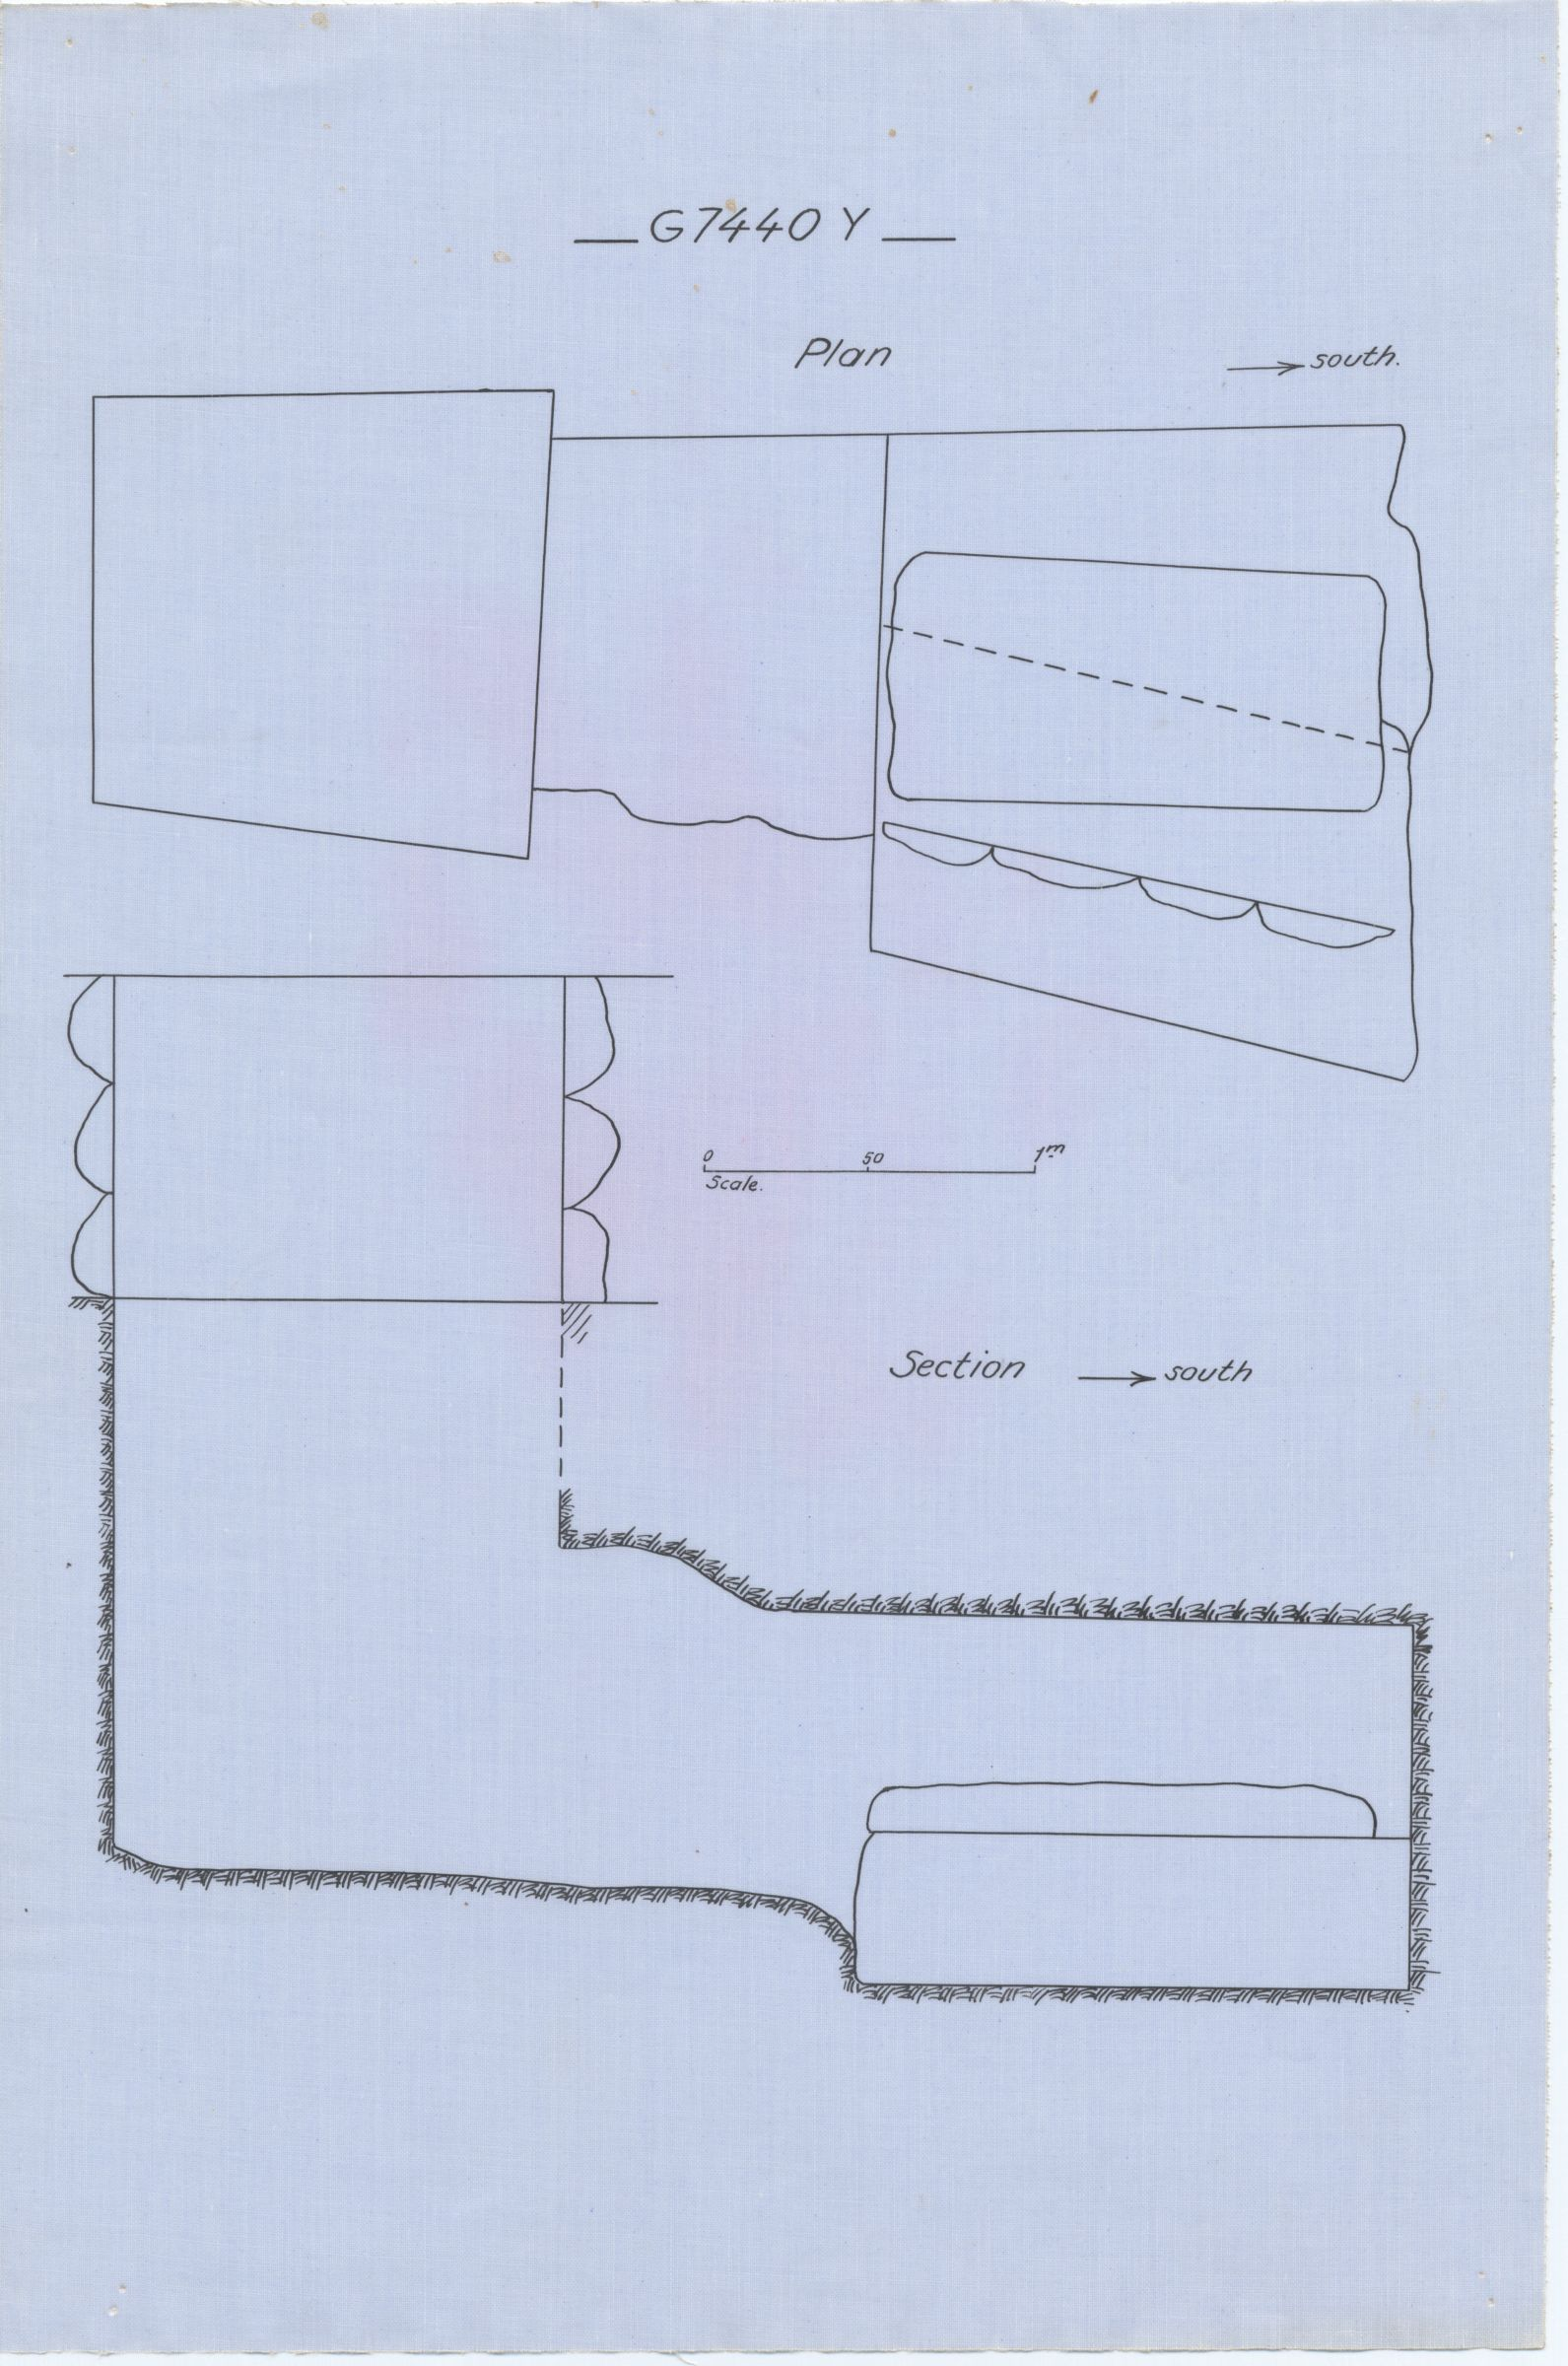 Maps and plans: G 7440, Shaft Y (= G 7441 )